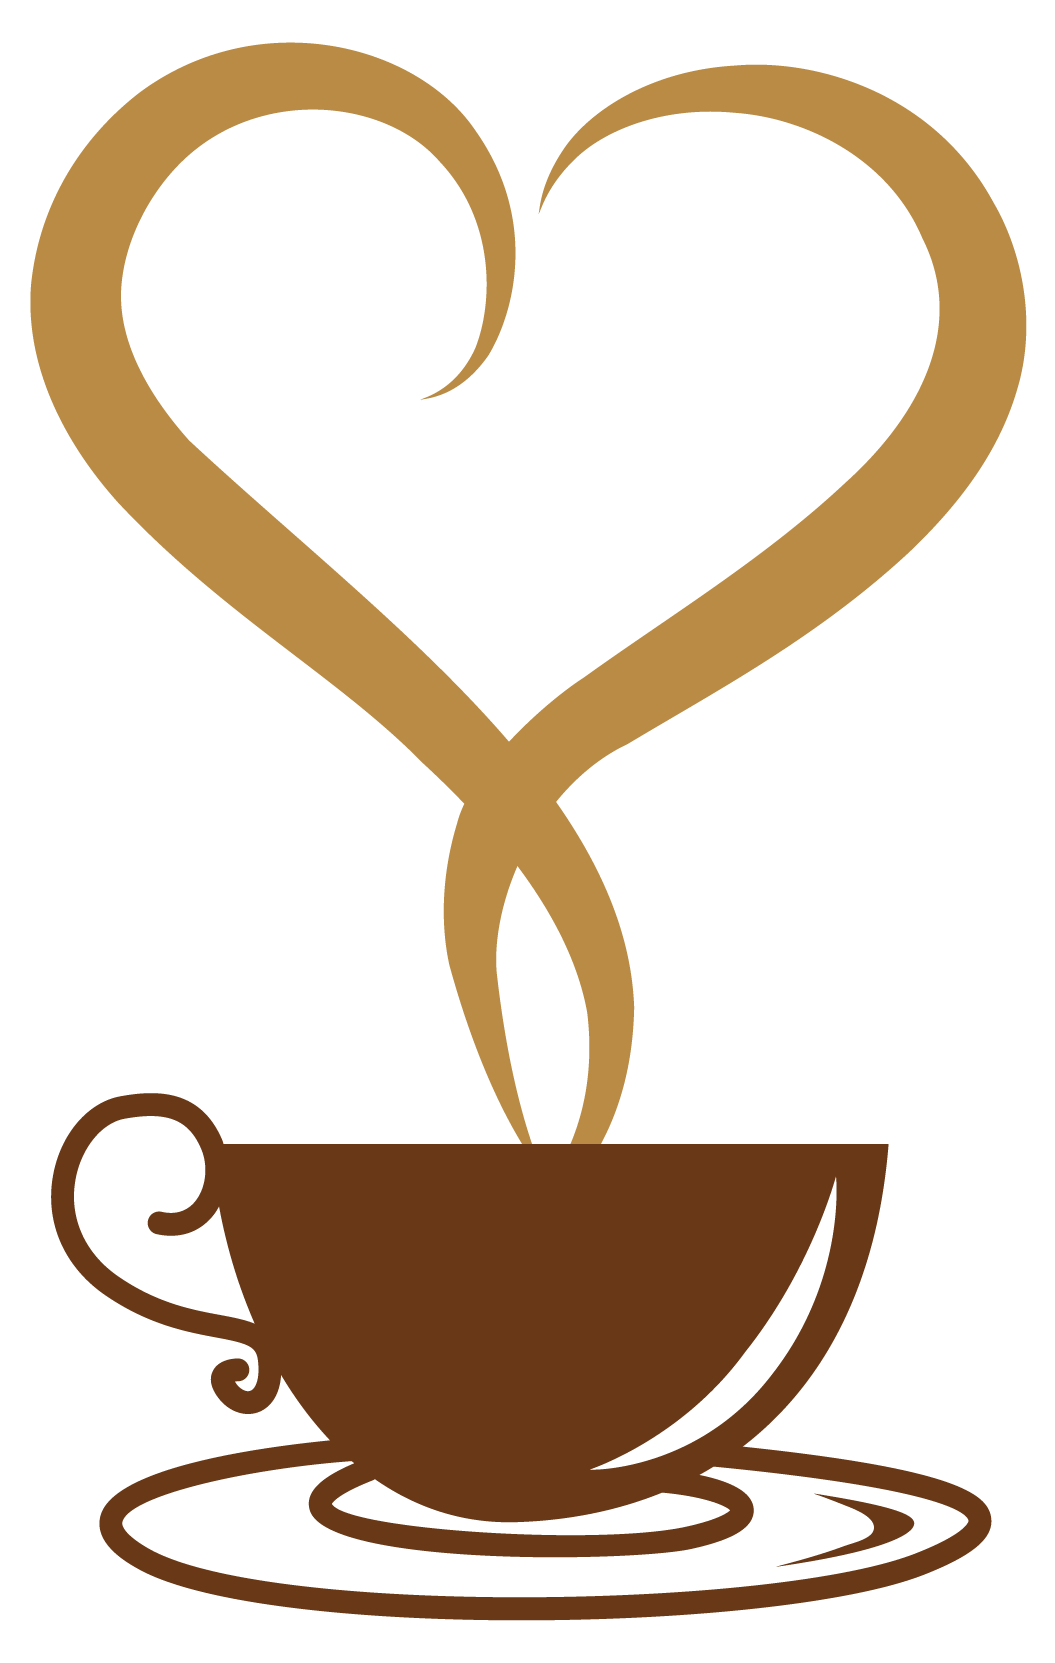 hight resolution of coffee cup starbucks cup clipart top pictures gallery image 14122